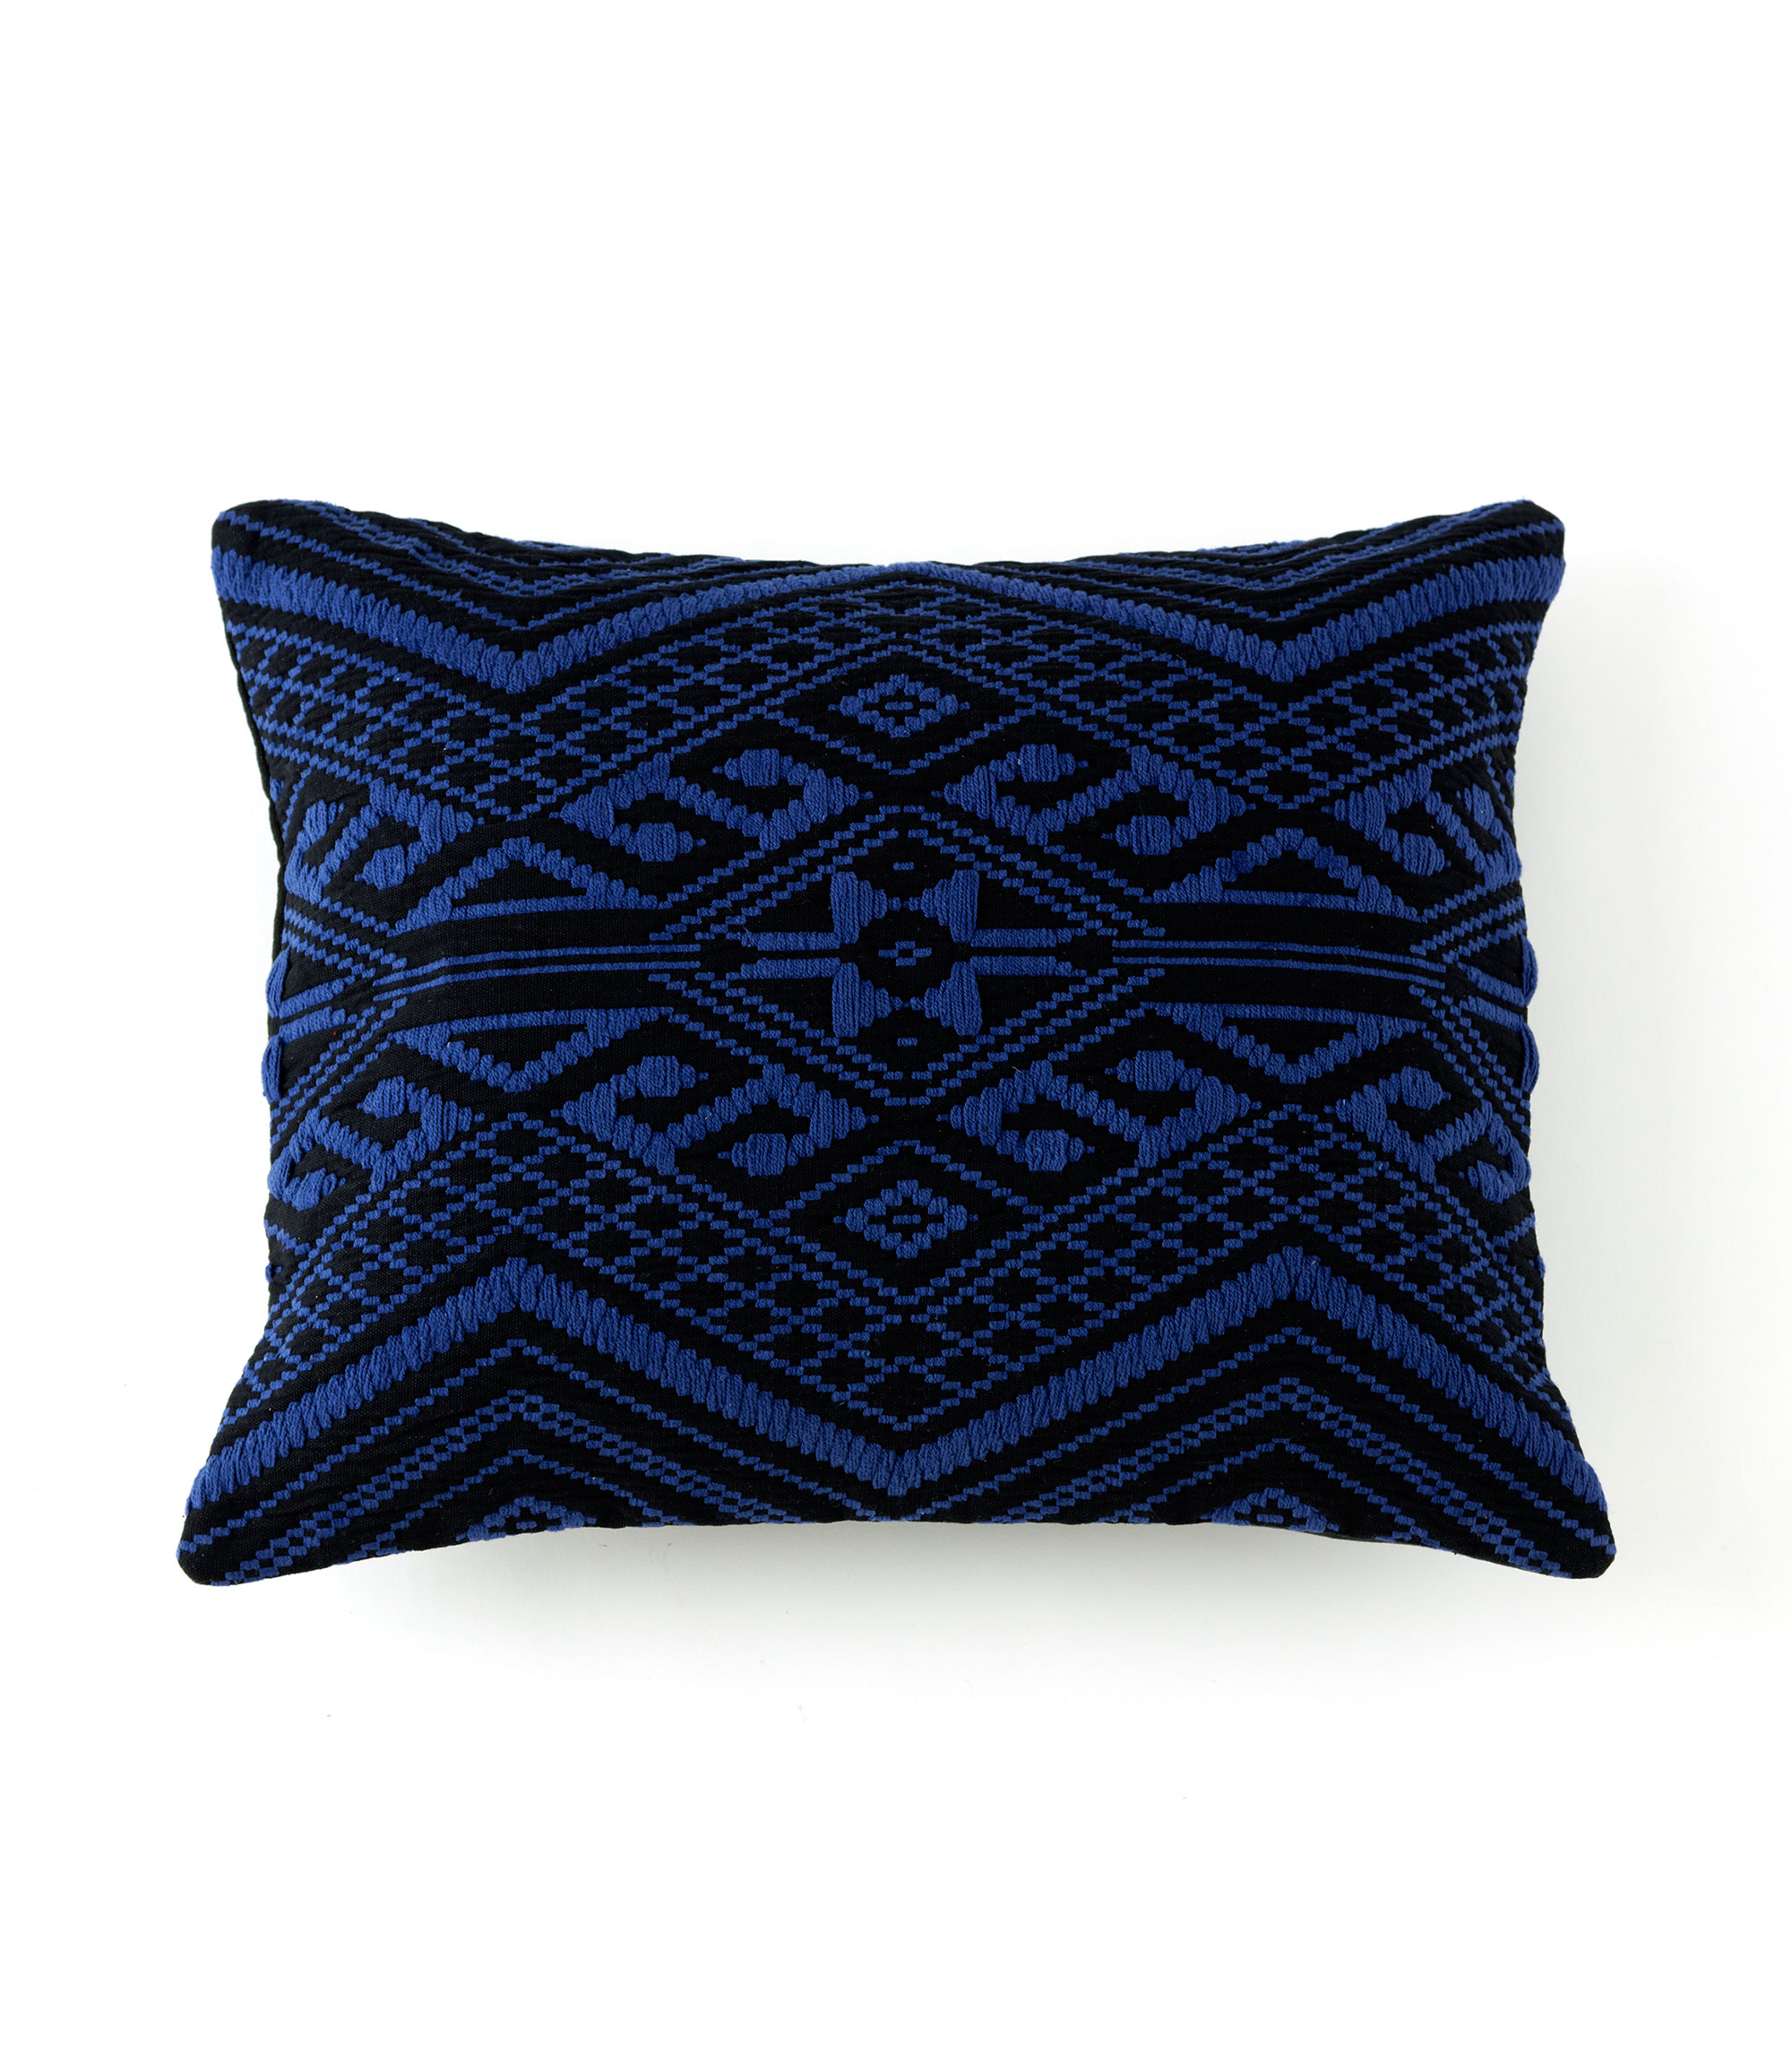 isis pillow - SL-28-88-001